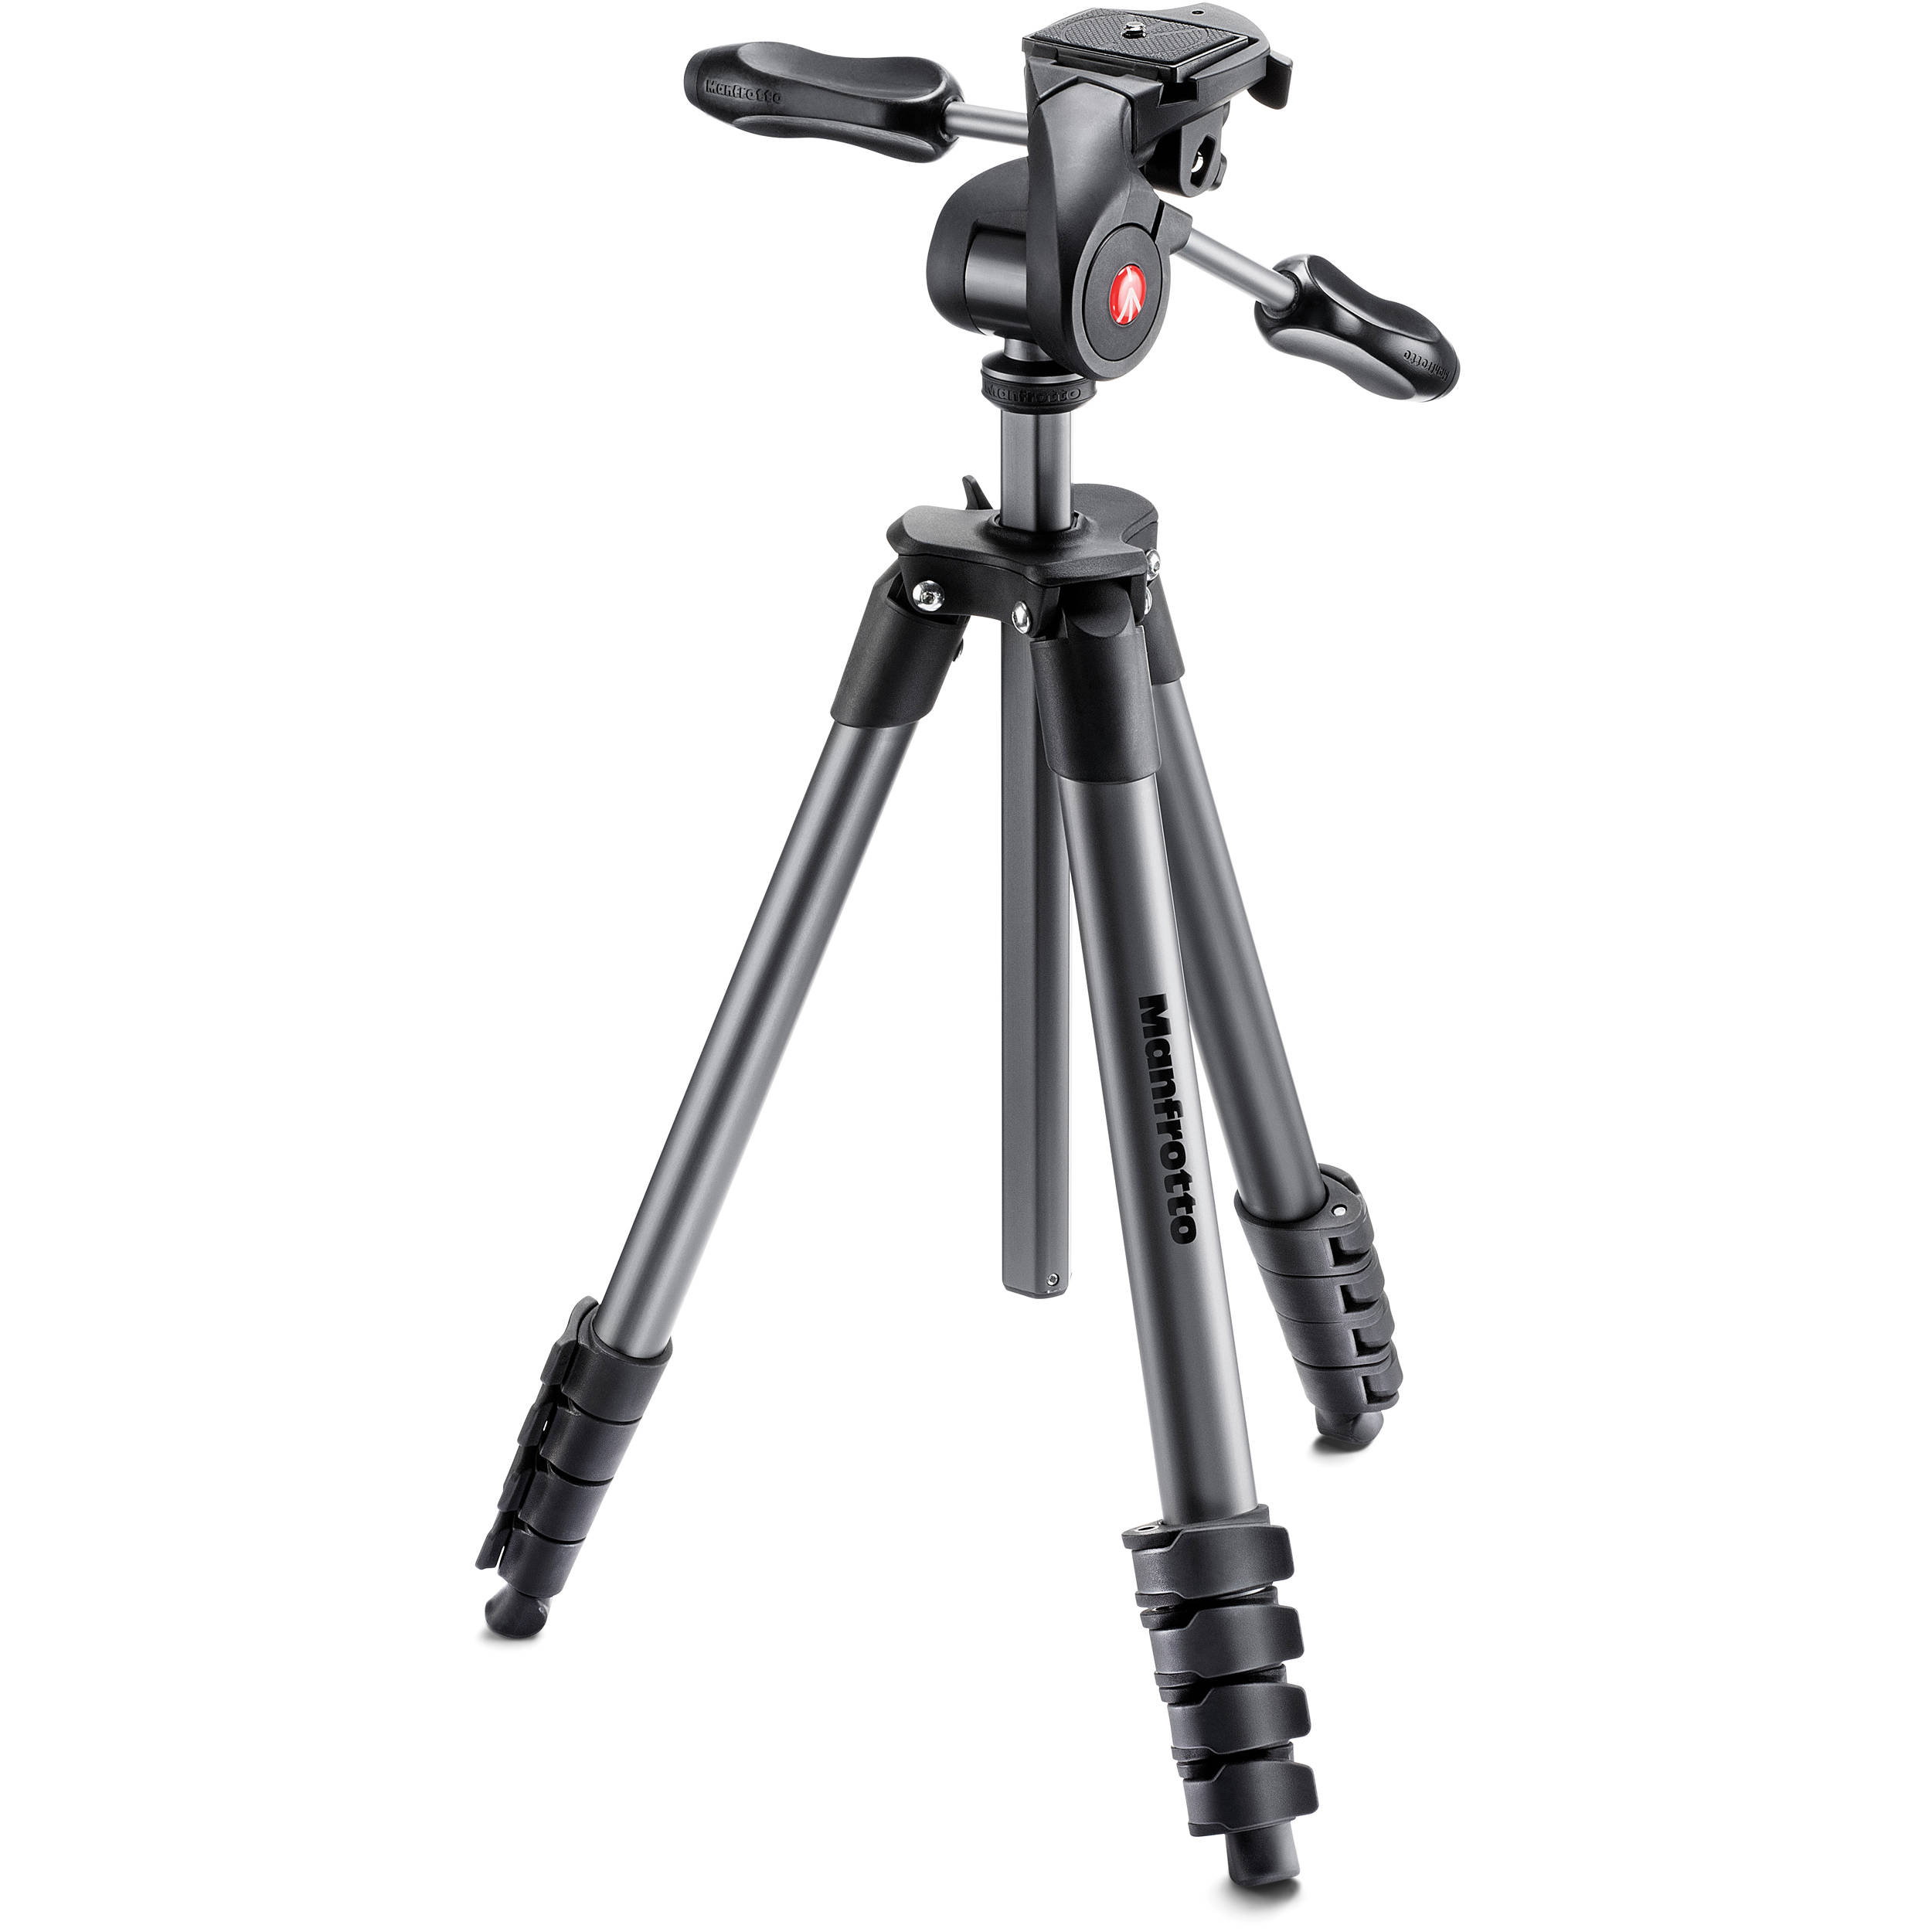 3D Super Pro 3-way tripod head with safety catch | Manfrotto